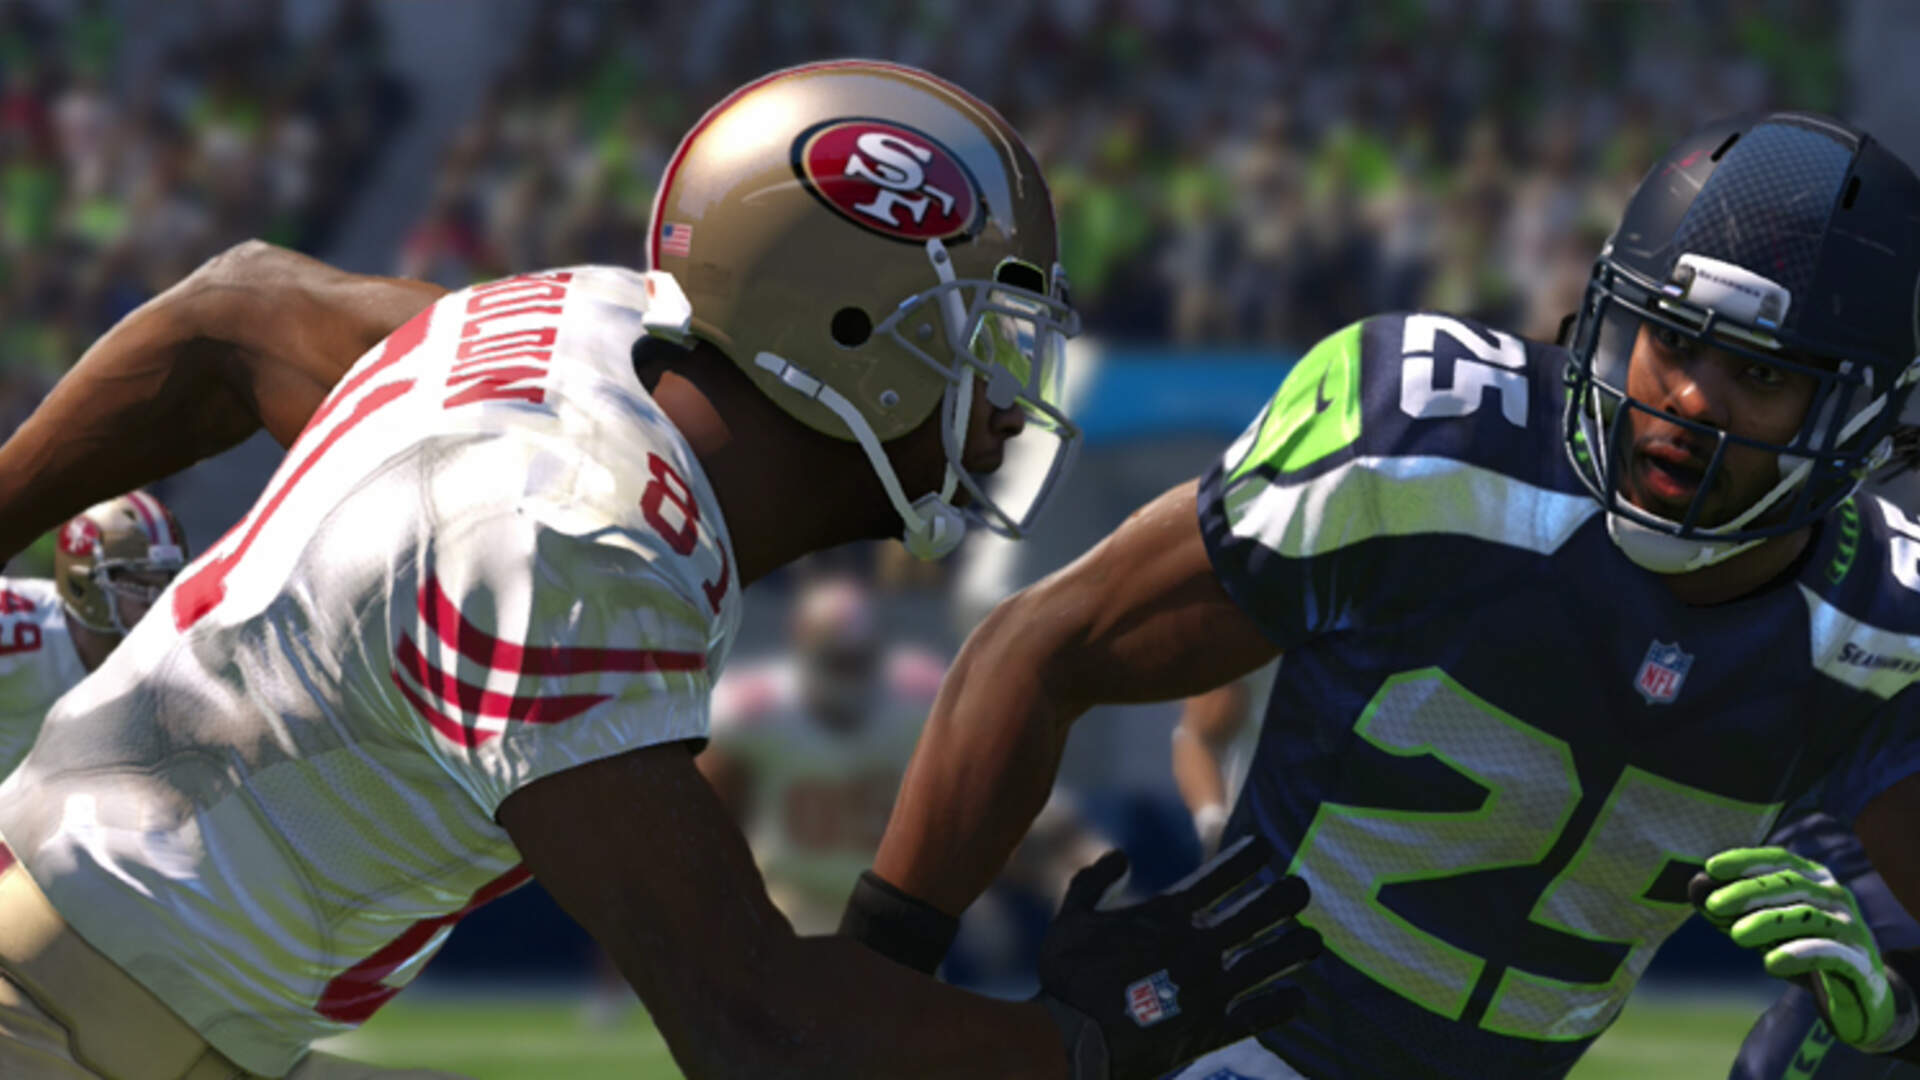 Madden NFL 15 PS4 Review: Madden-ing